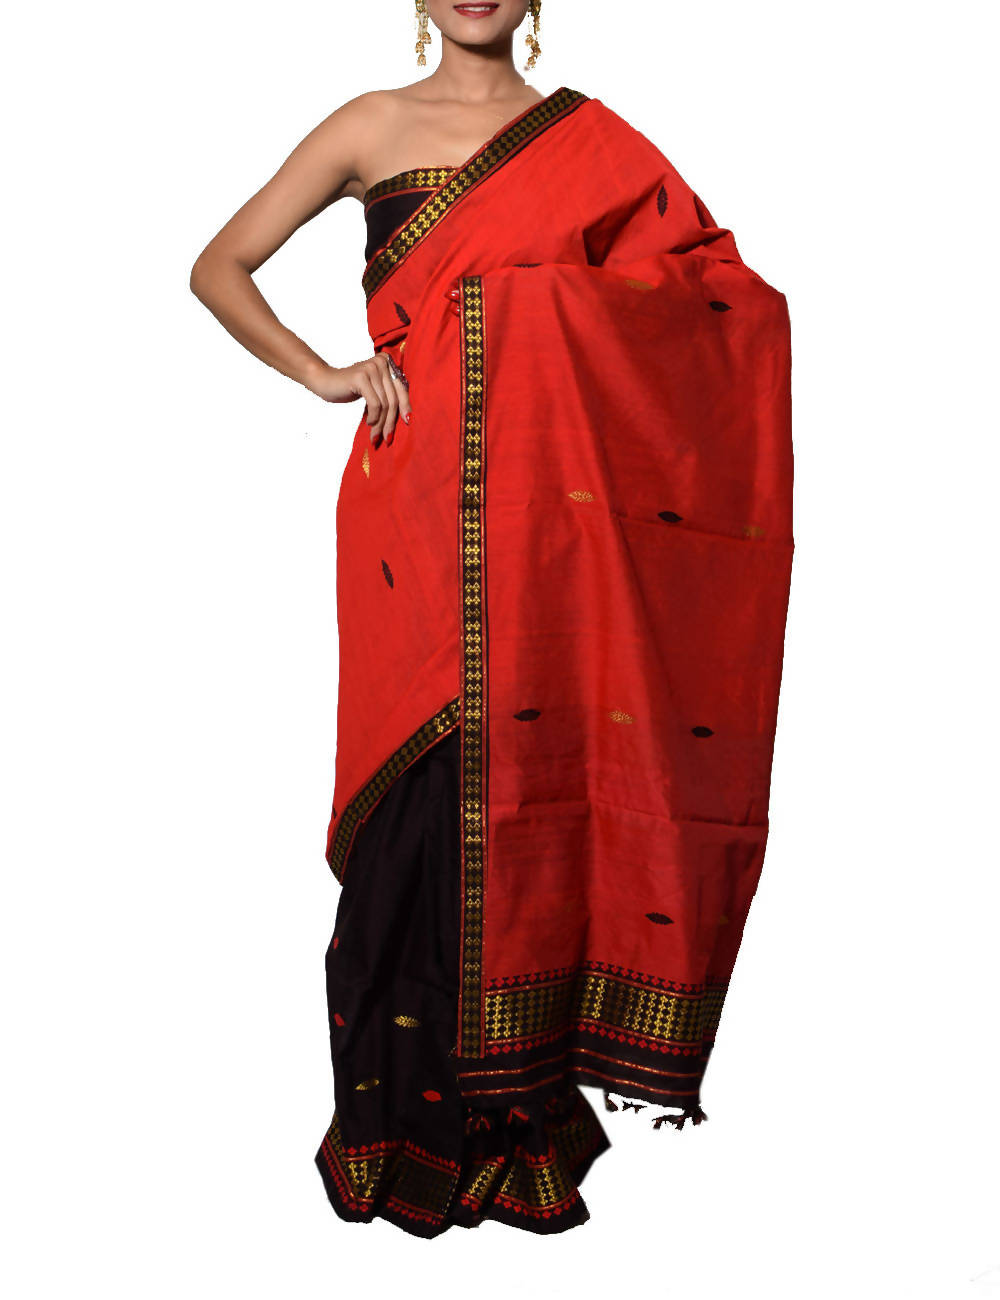 Red and Black Assam Cotton Mekhela Chador